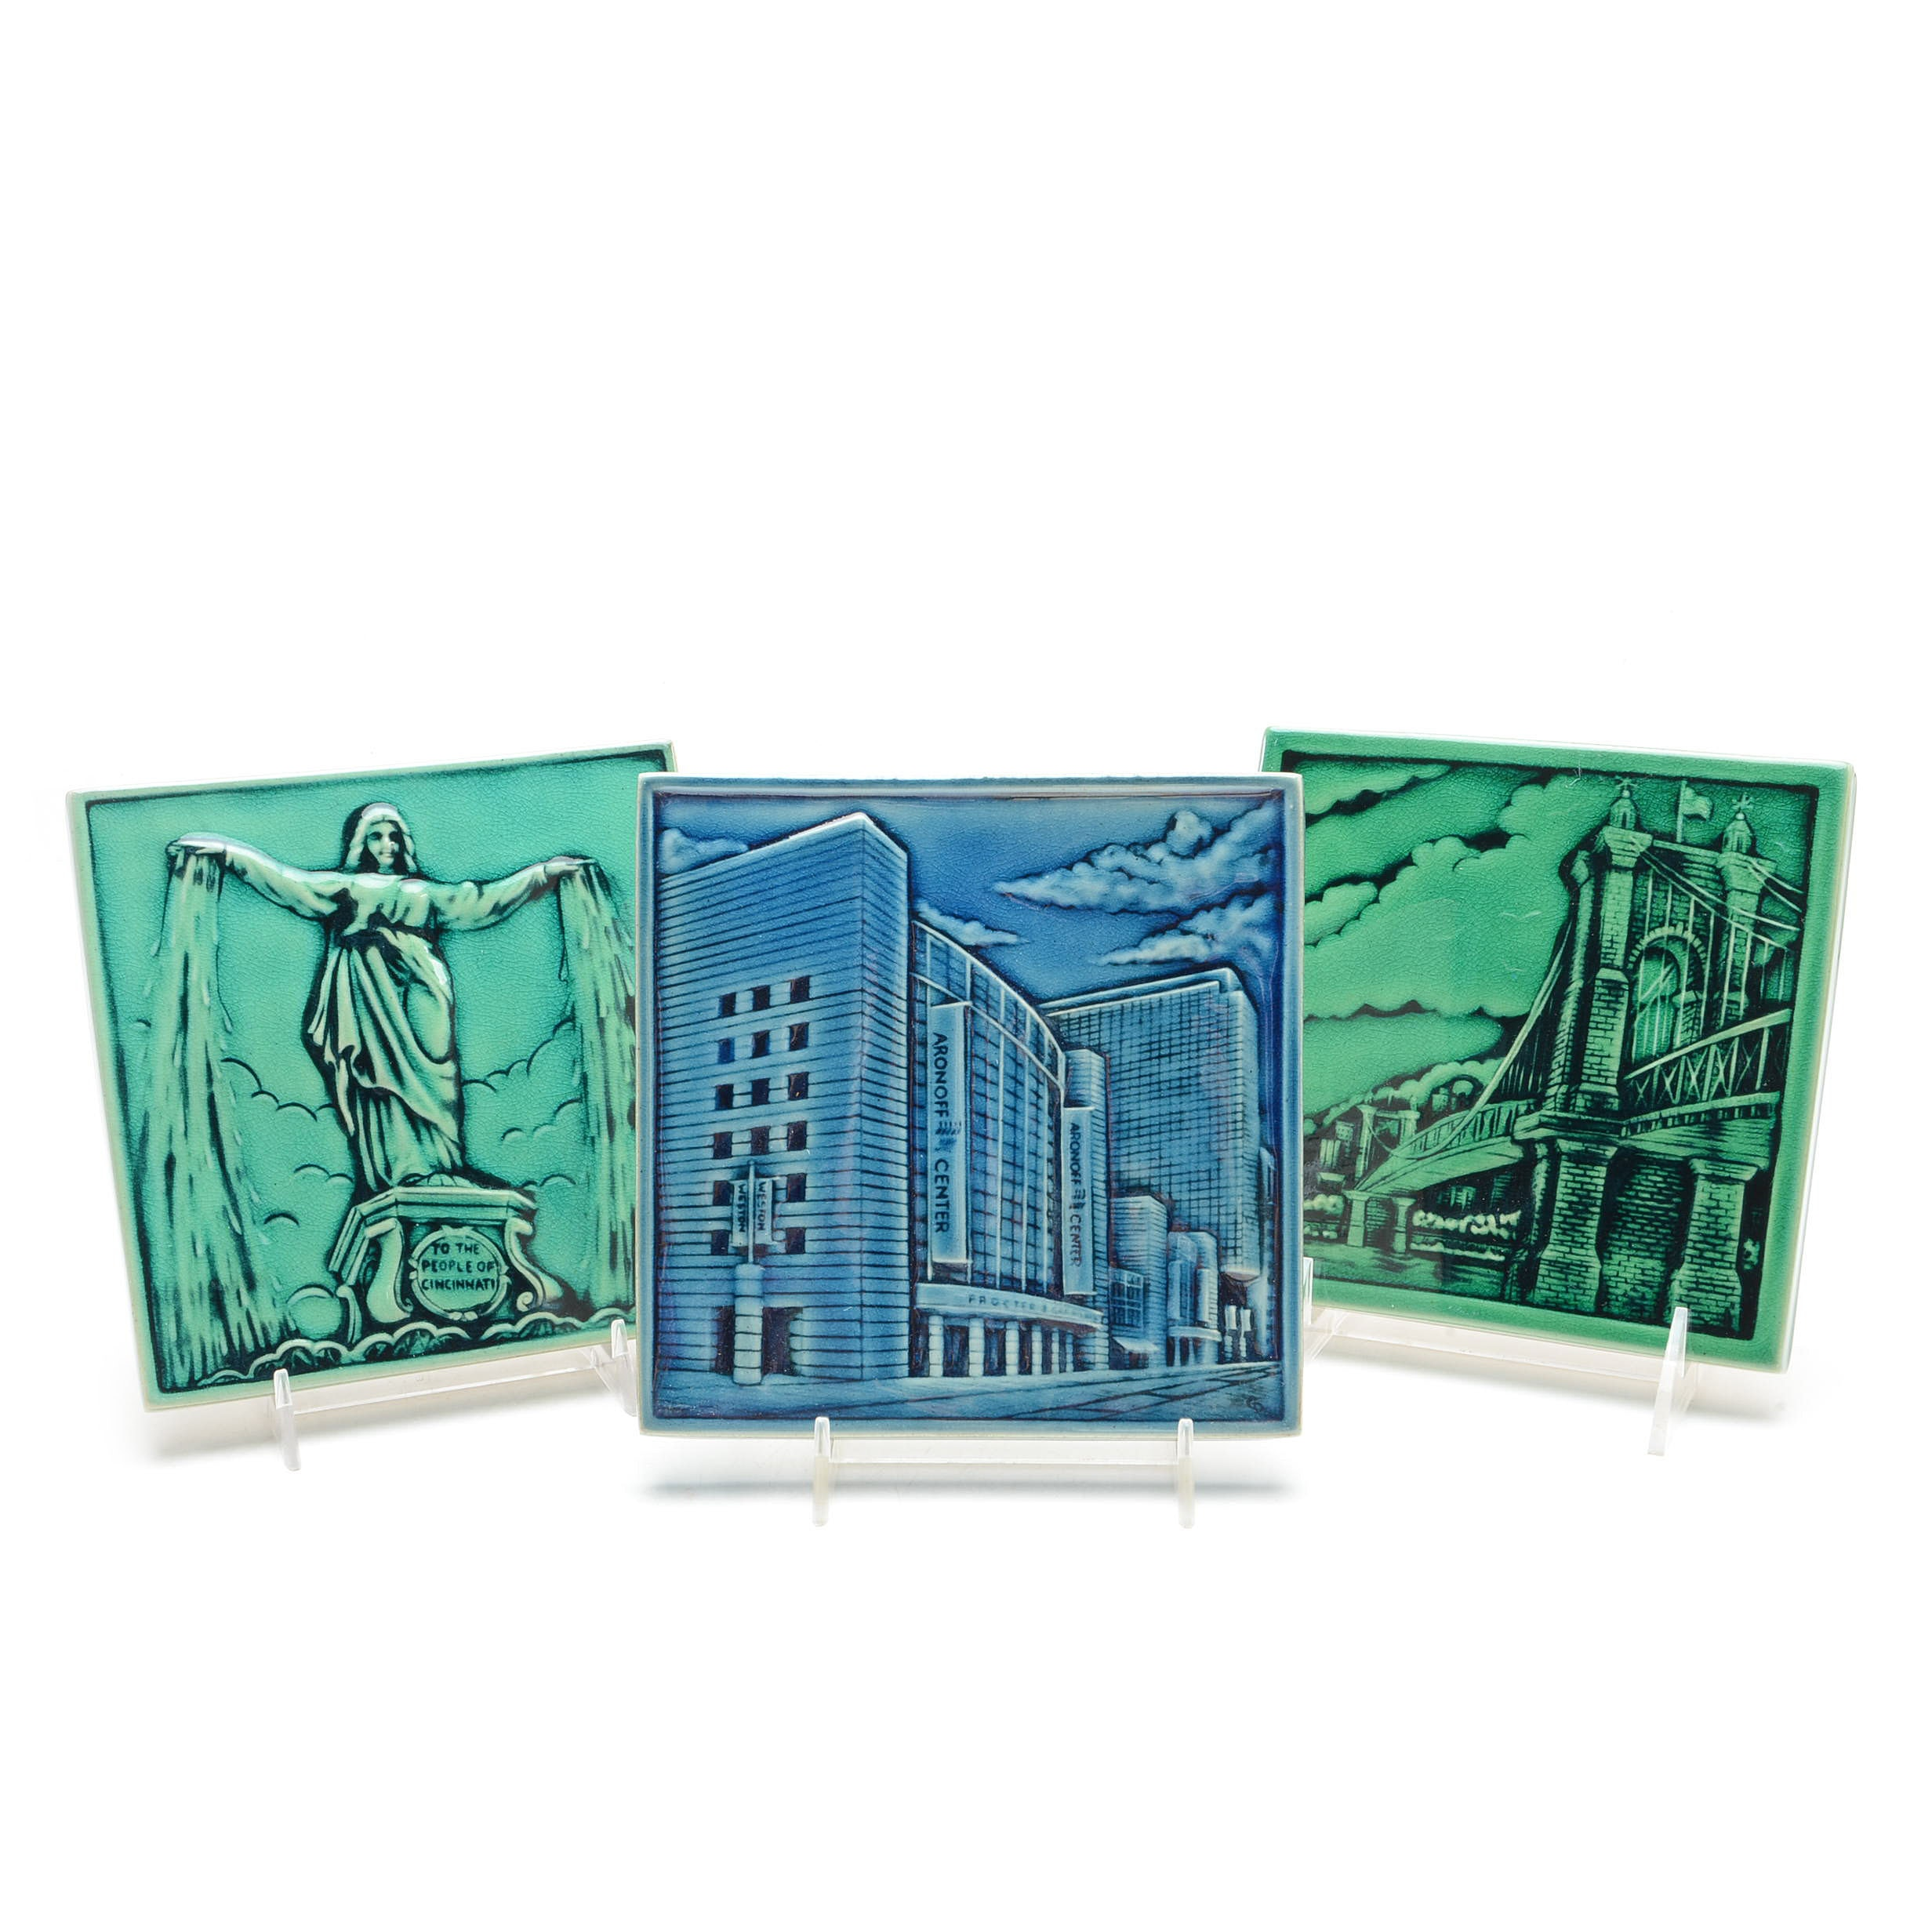 Rookwood Pottery Cincinnati Landmark Tiles